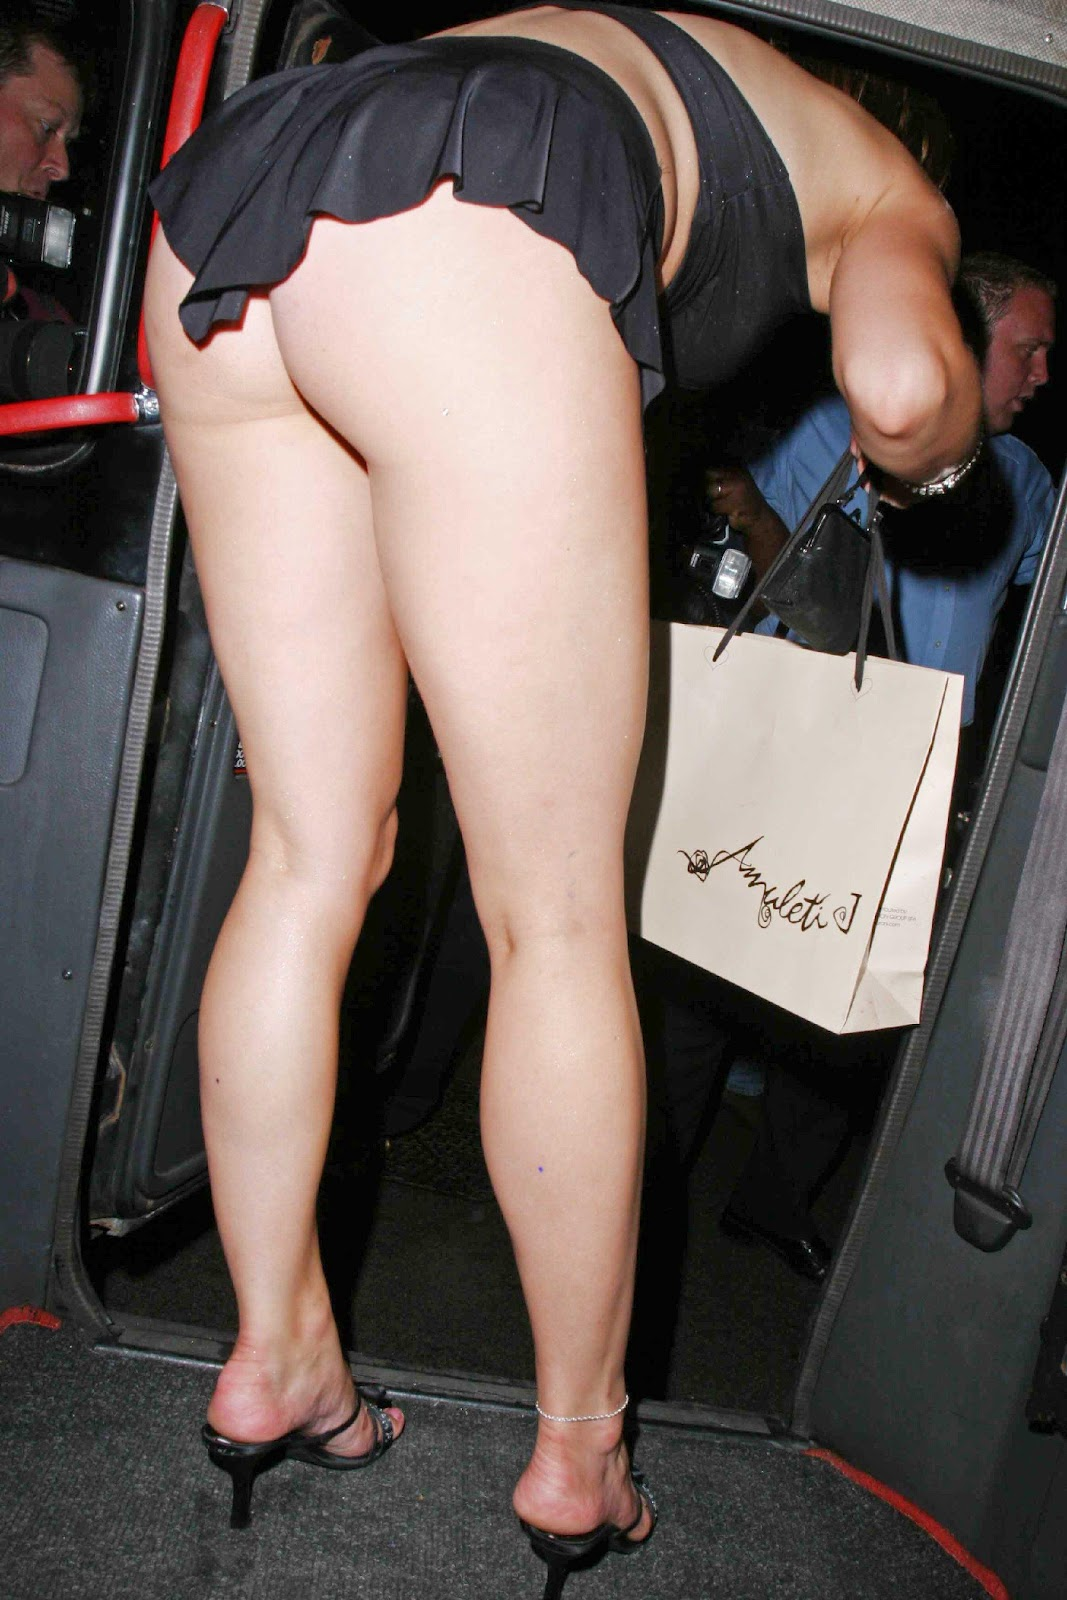 ass-butt-celeb-famous-no-picture-blowjob-nude